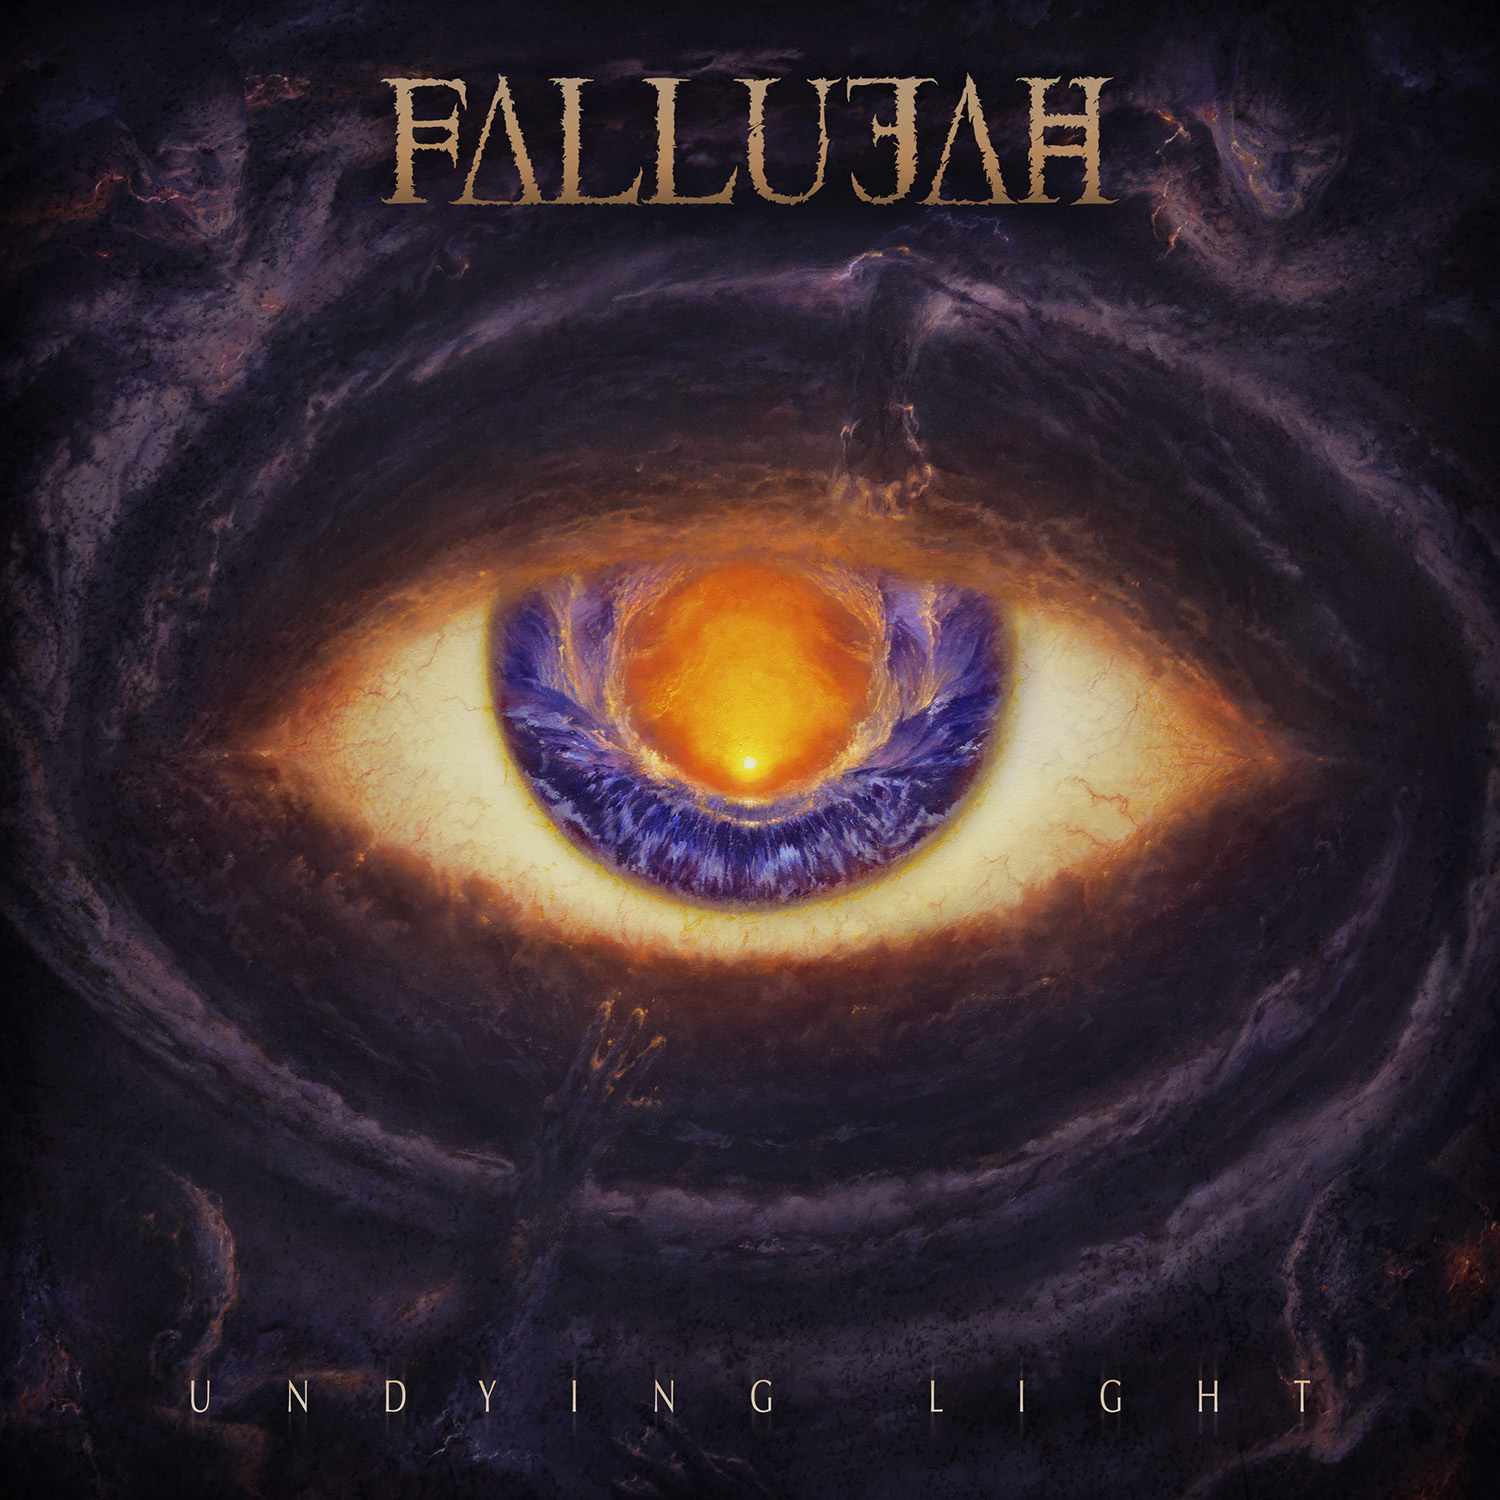 Fallujah - Undying Light Review